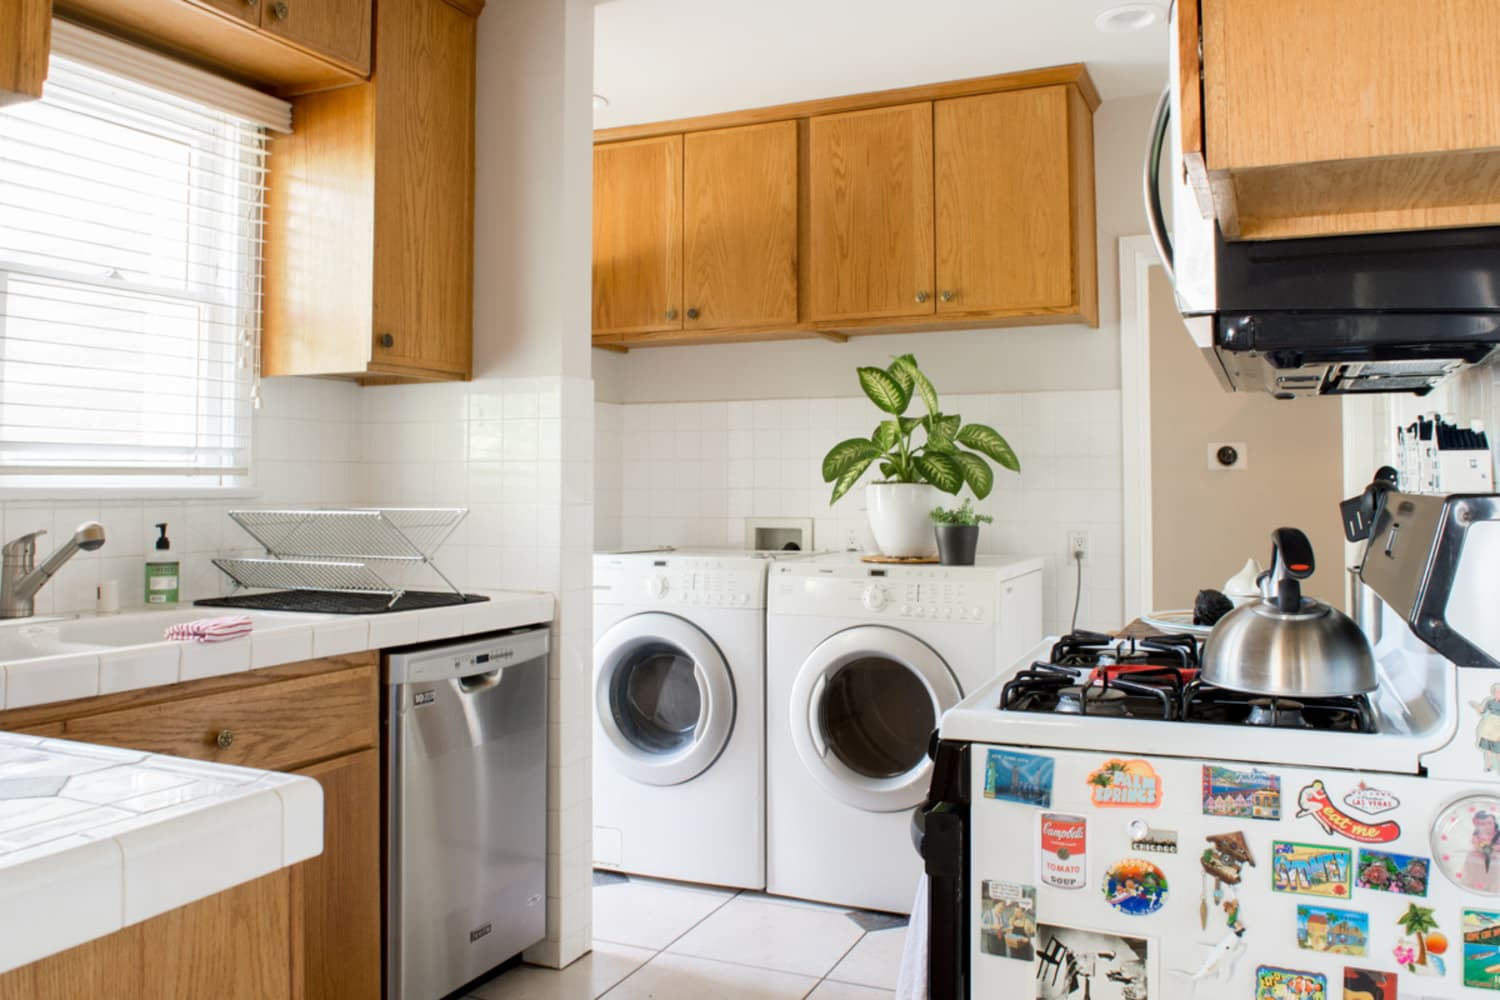 4 Things Experts Say You'll Almost Always Regret Paying Extra For in an Apartment